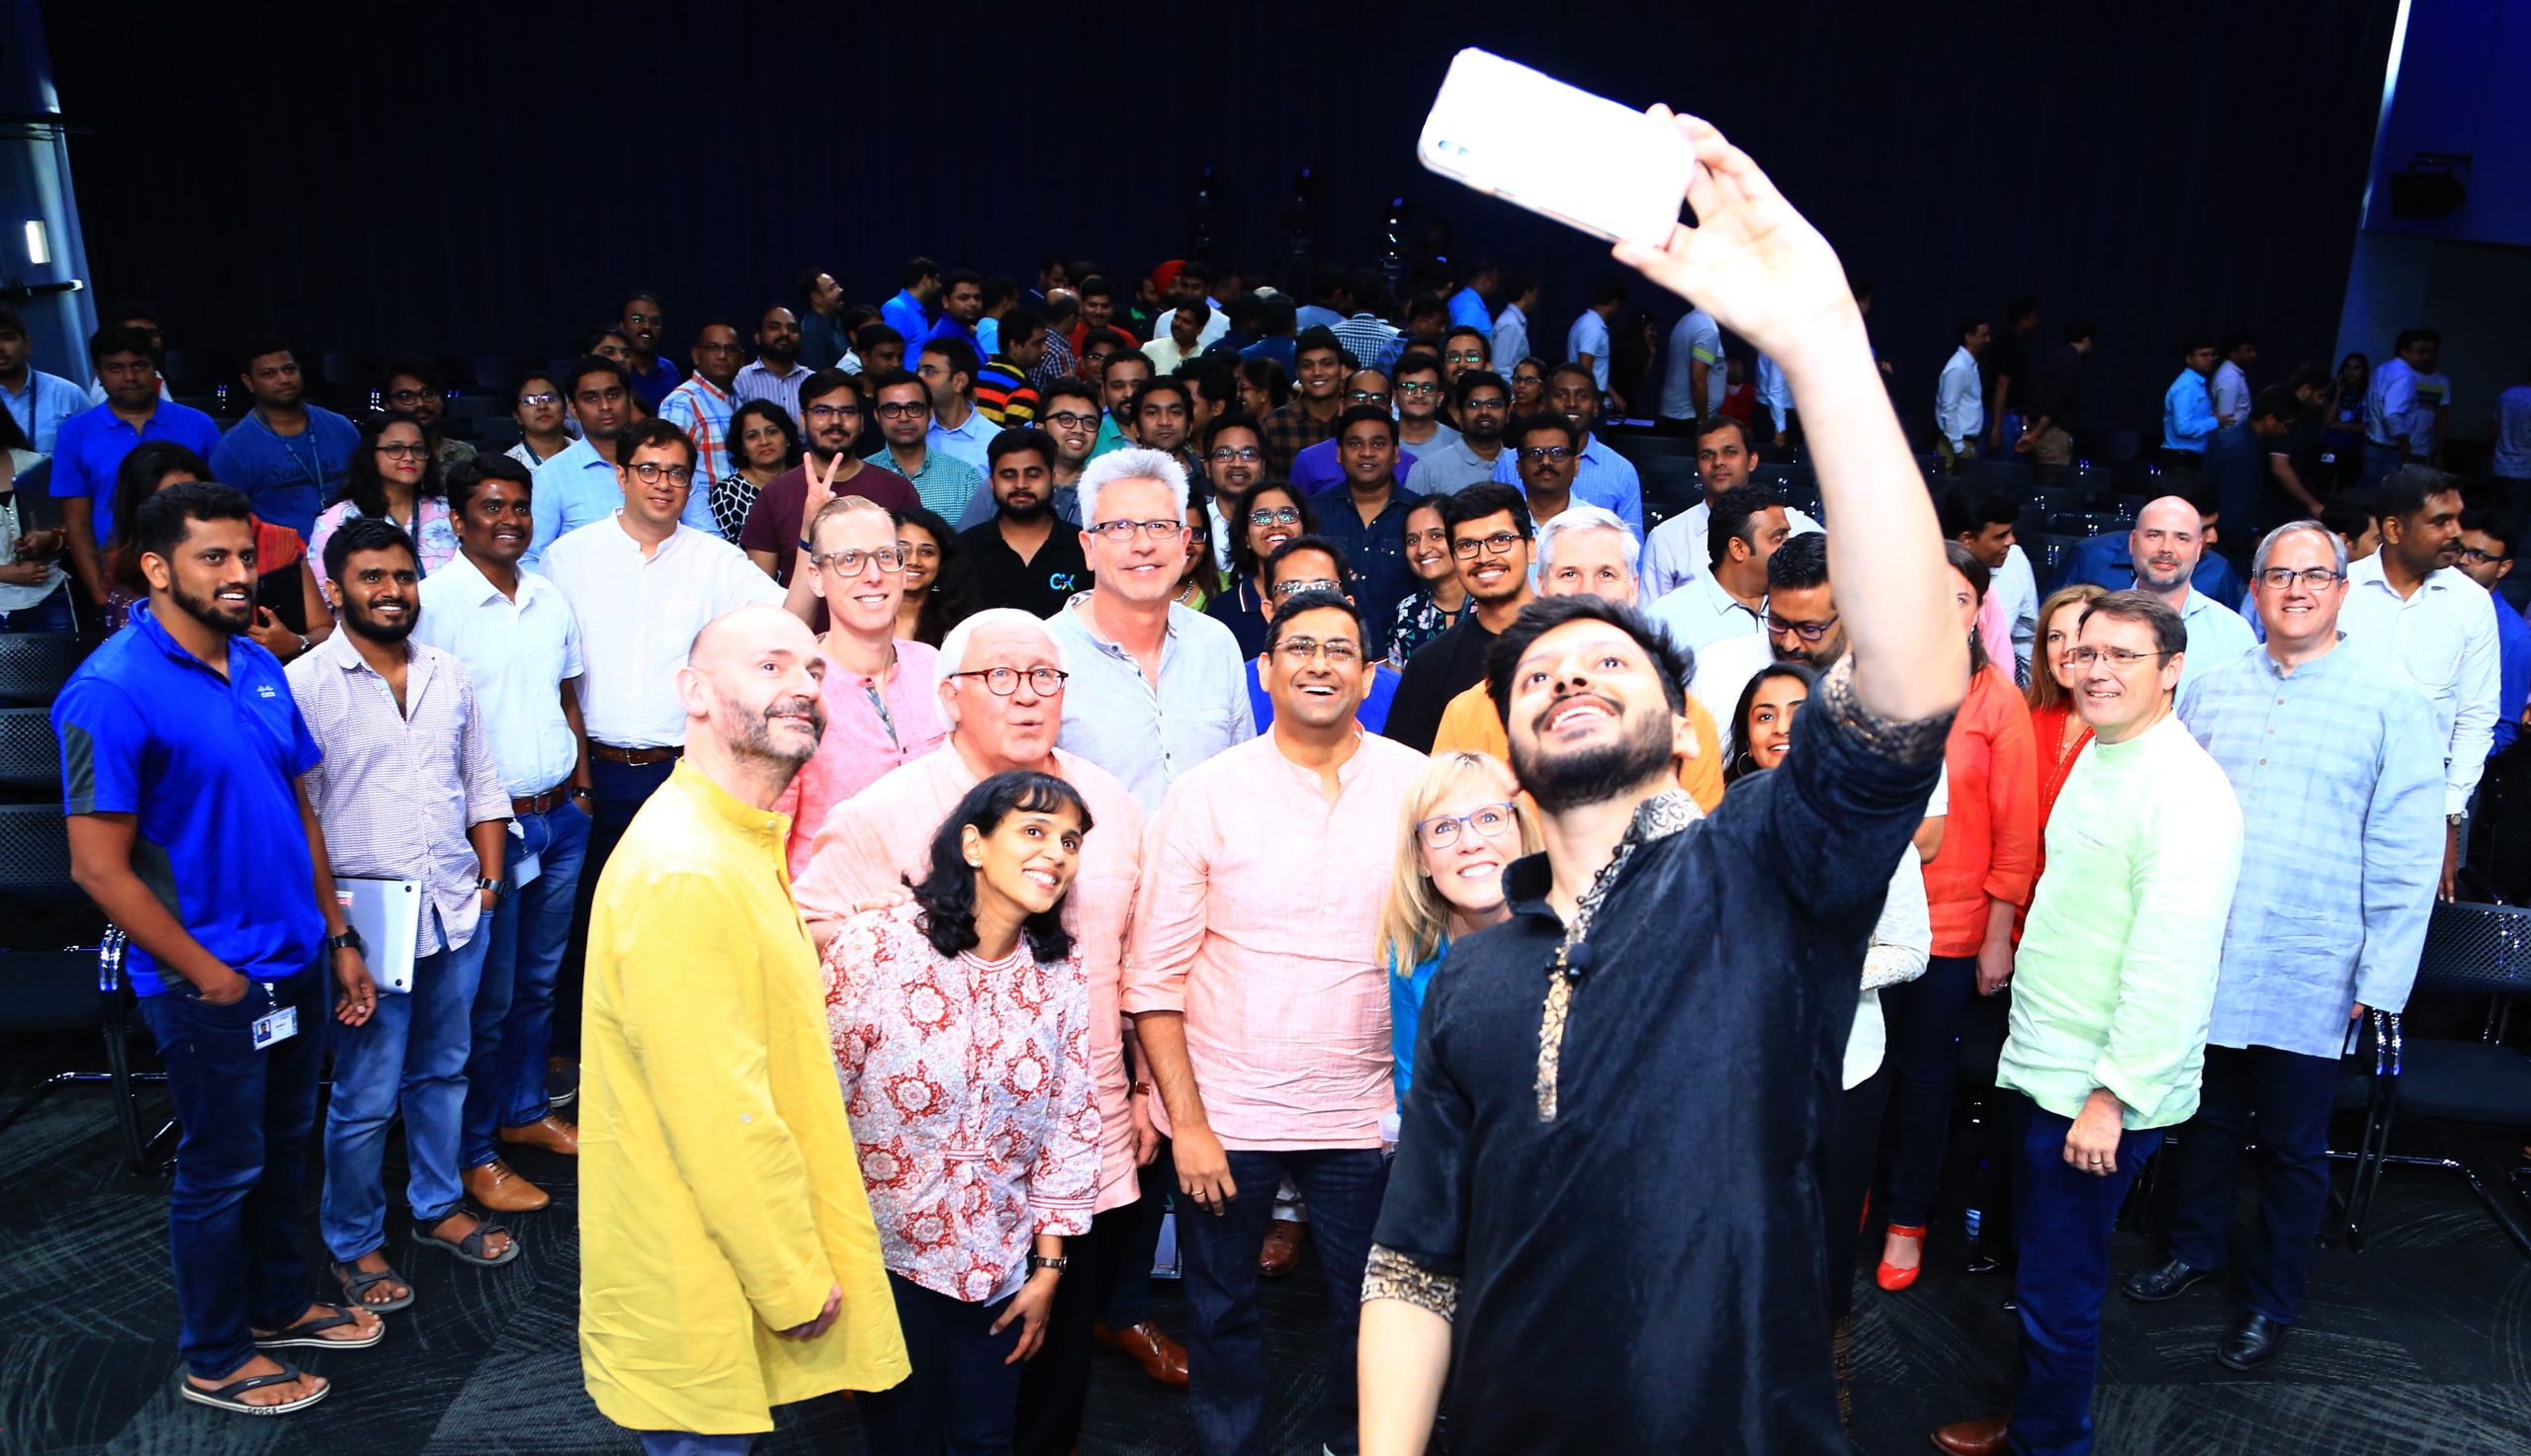 Rahul taking a selfie with a large group of people.